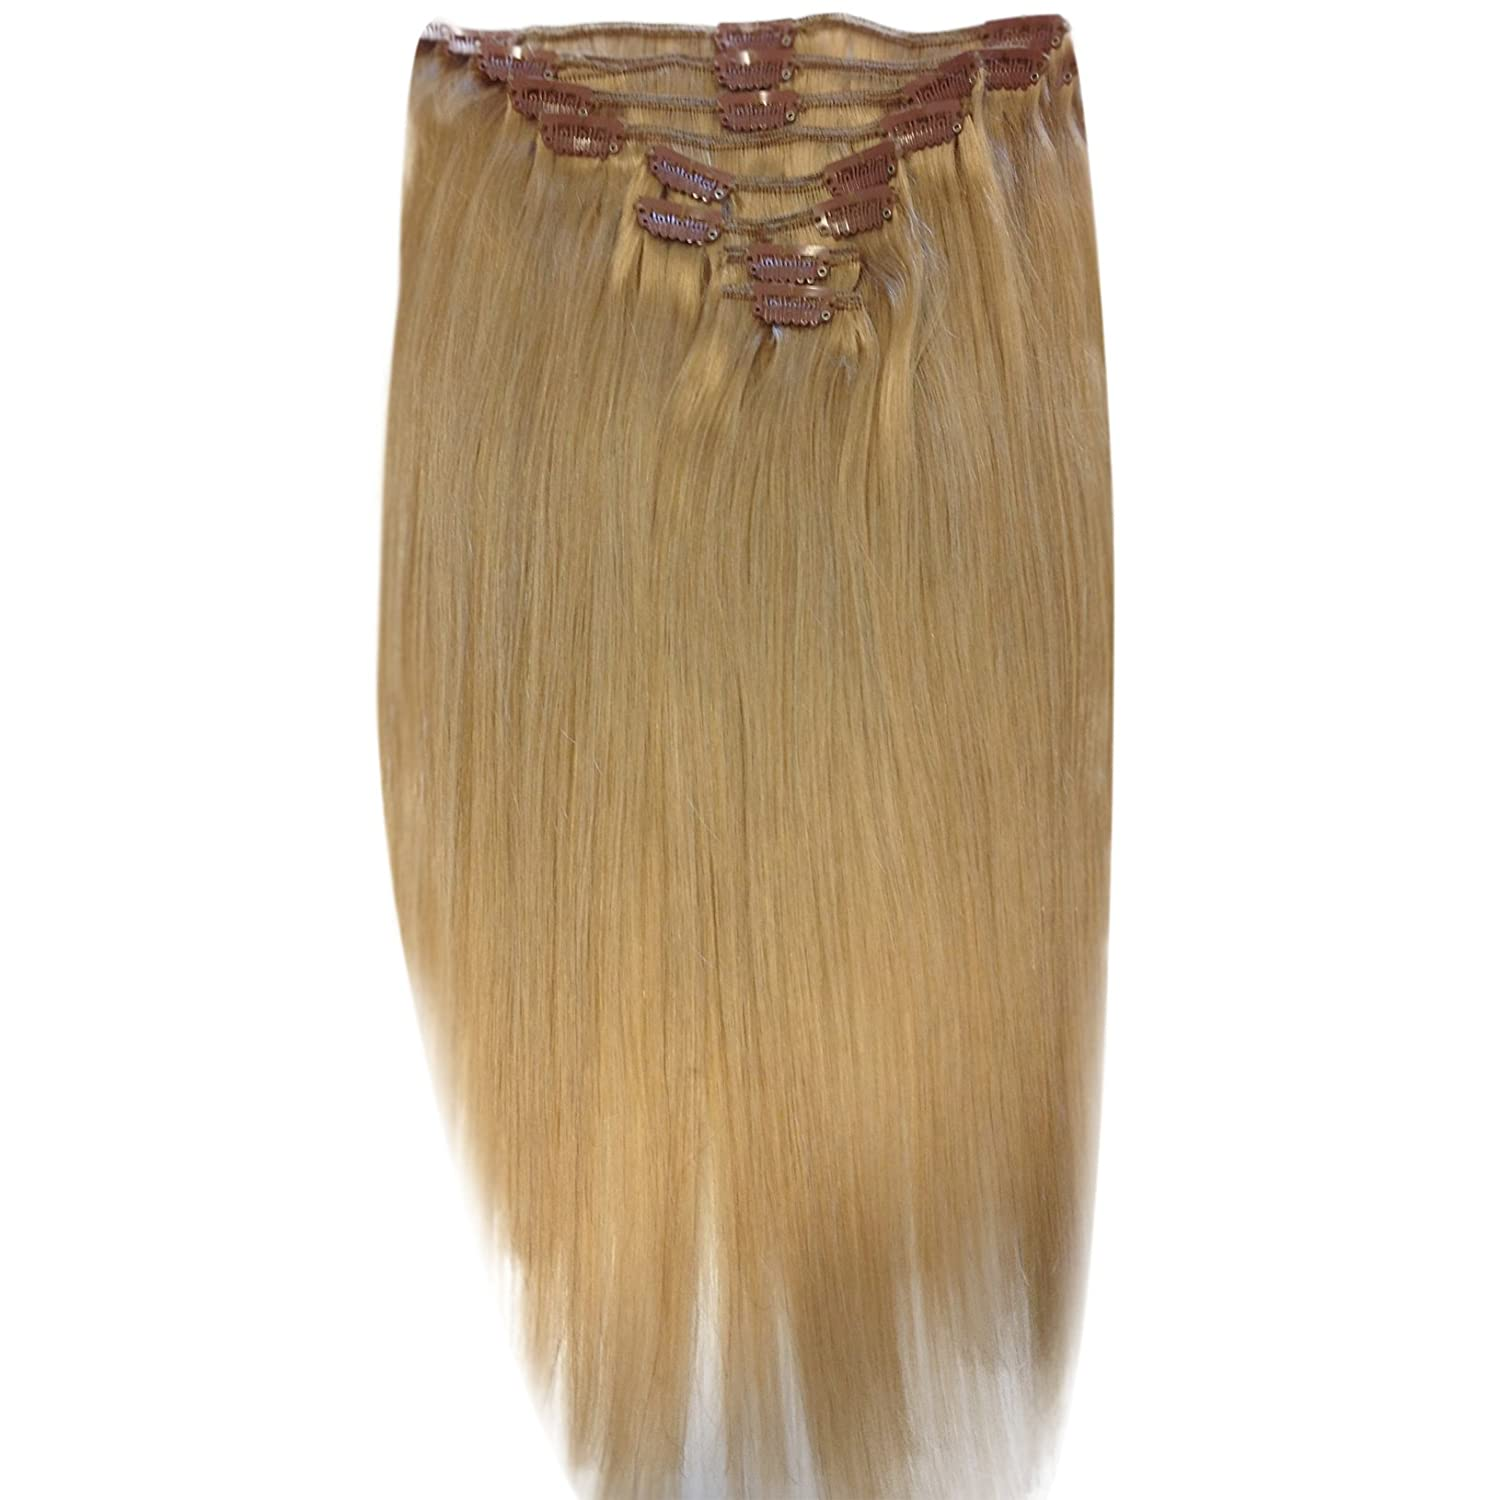 Amazon 18 inch golden blonde 16 full head clip in human amazon 18 inch golden blonde 16 full head clip in human hair extensions high quality remy hair 120g weight beauty pmusecretfo Gallery